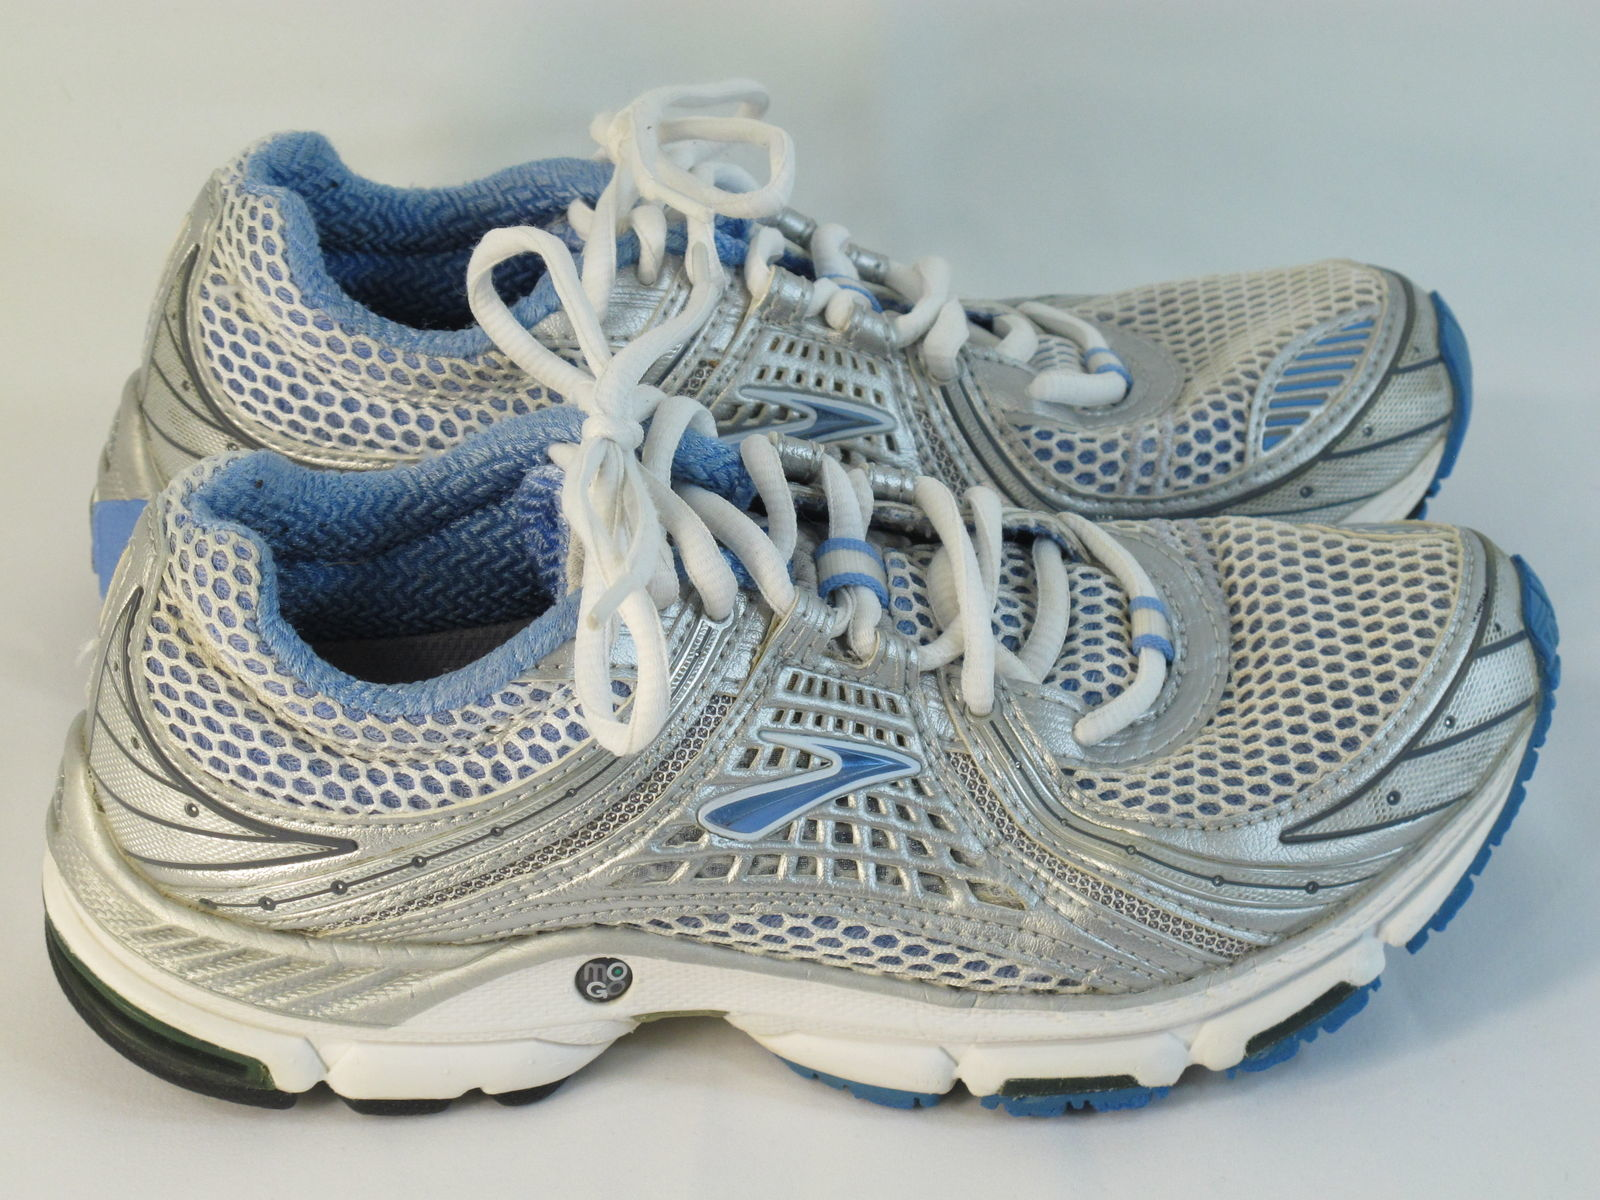 8eada6cf558 Brooks Trance 8 Running Shoes Women s Size 7 and 23 similar items. S l1600